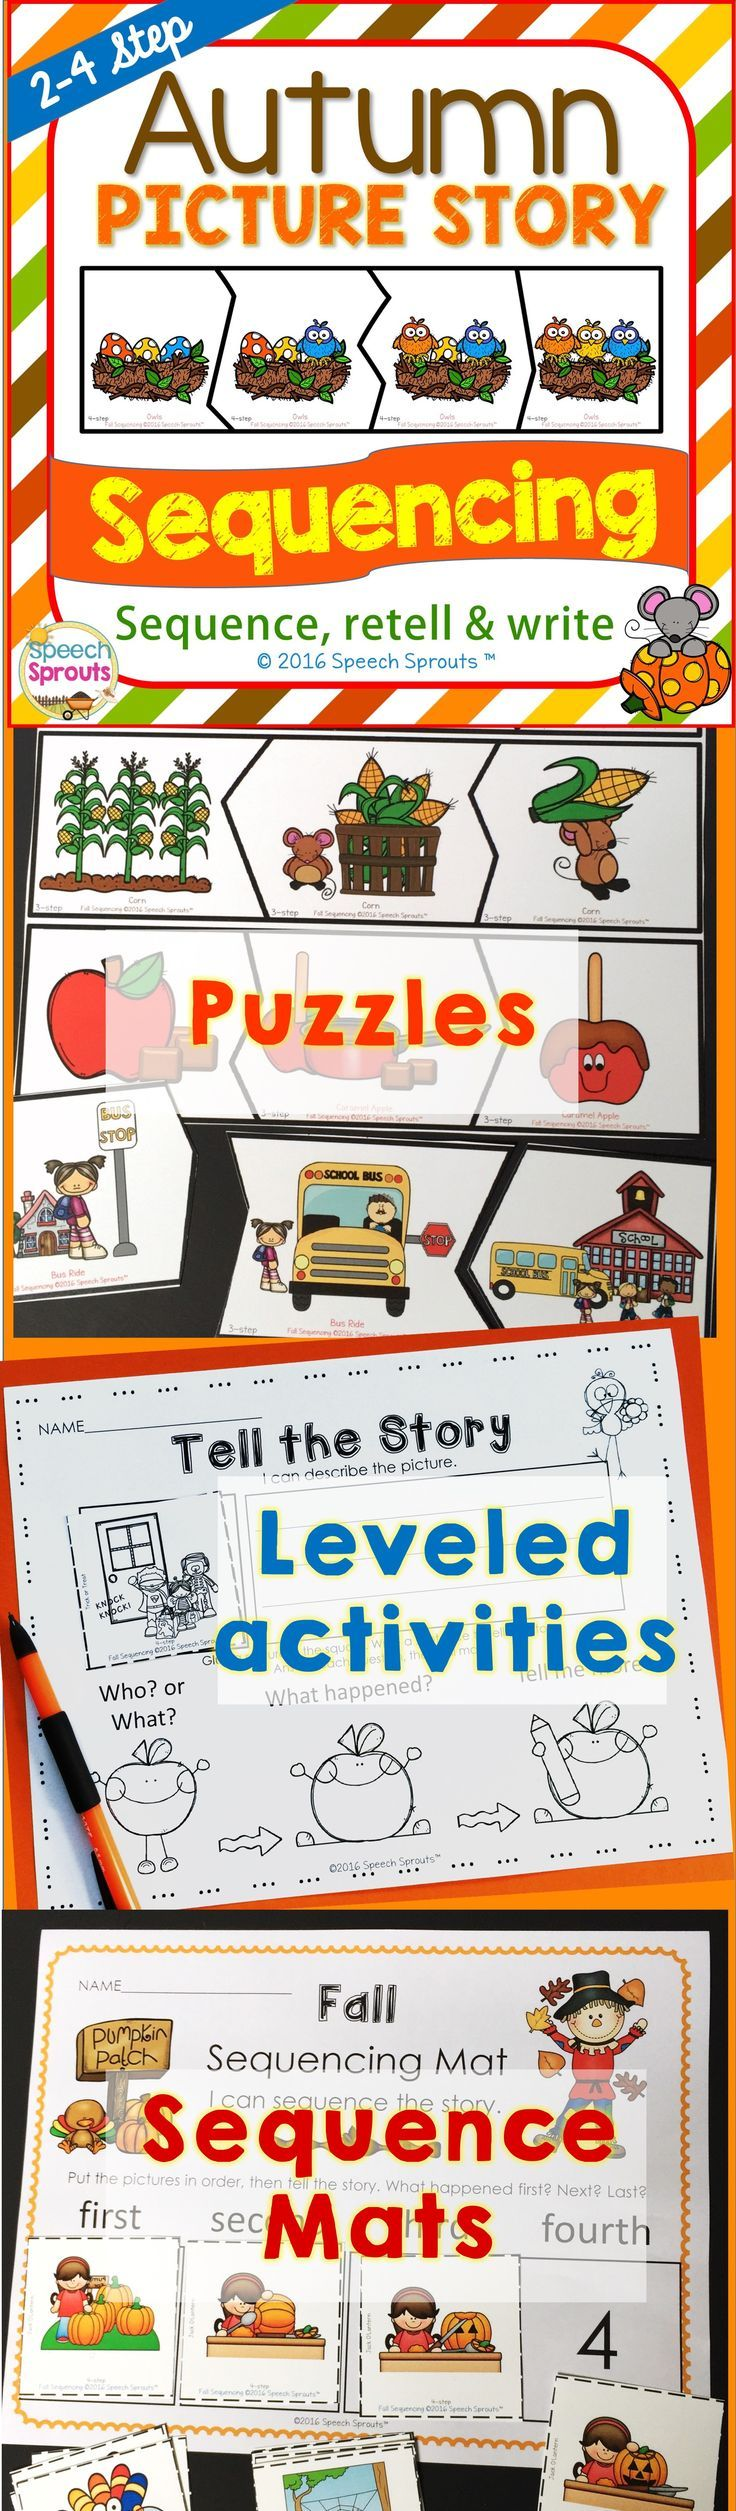 $ Autumn sequencing!  Leveled fall picture story activities include 2, 3 & 4 step sequences. You'll find puzzles for extra visula support picture cards and mats, a story-telling poster to assist with sentence construction, cut and paste printables for story retell and writing practice too. BW version included.